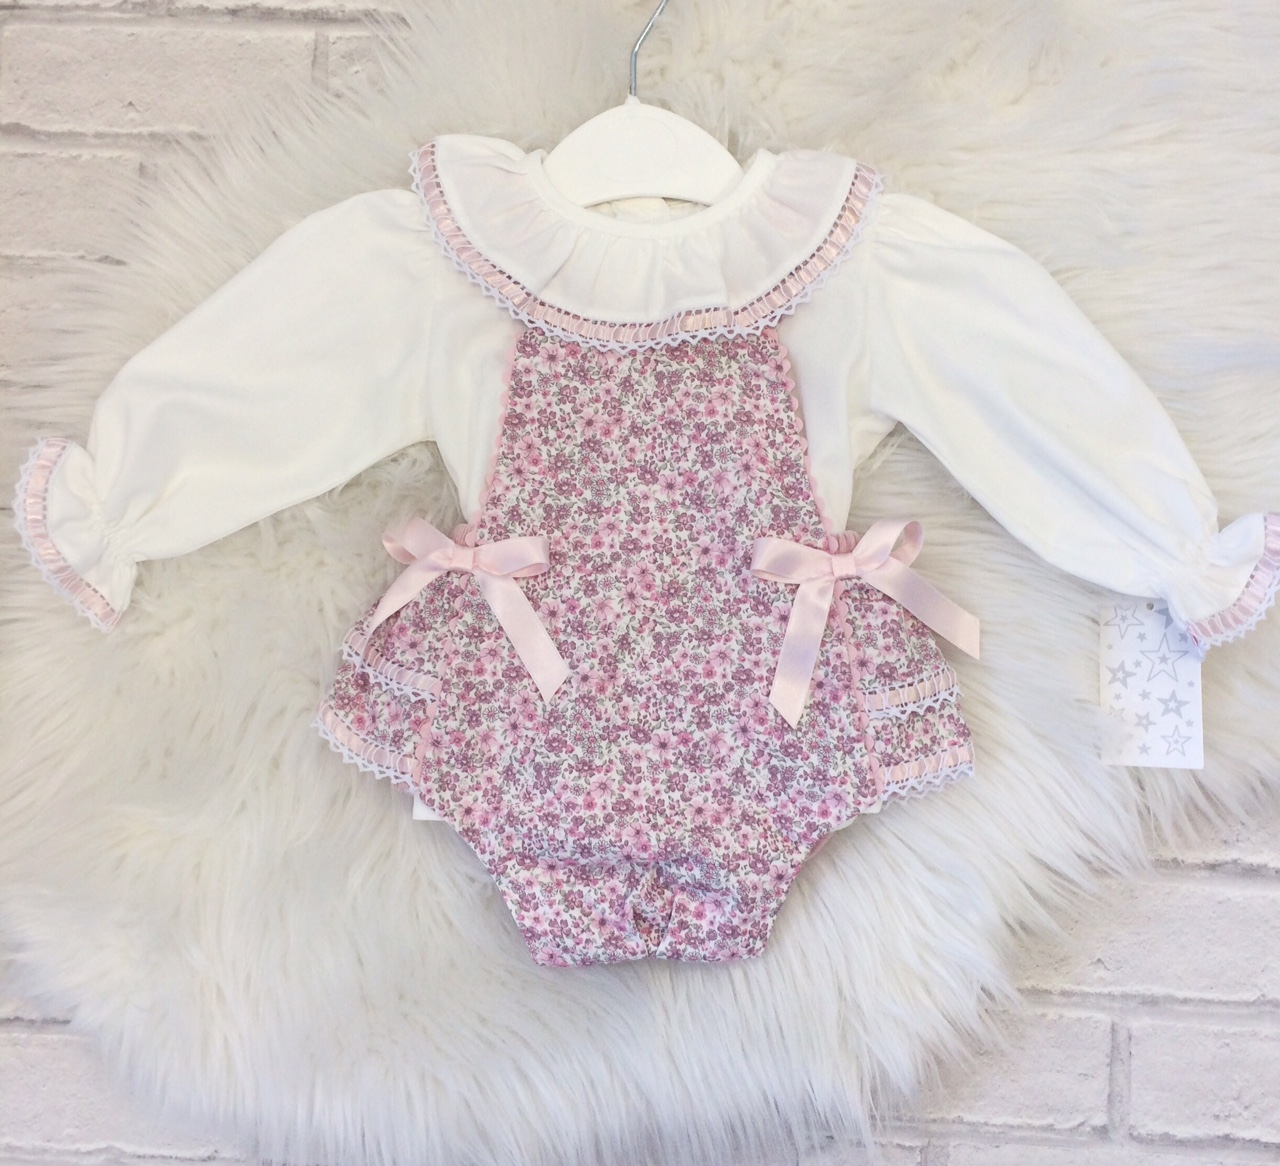 Baby Girls & Toddlers Pink Floral Dungaree Outfit